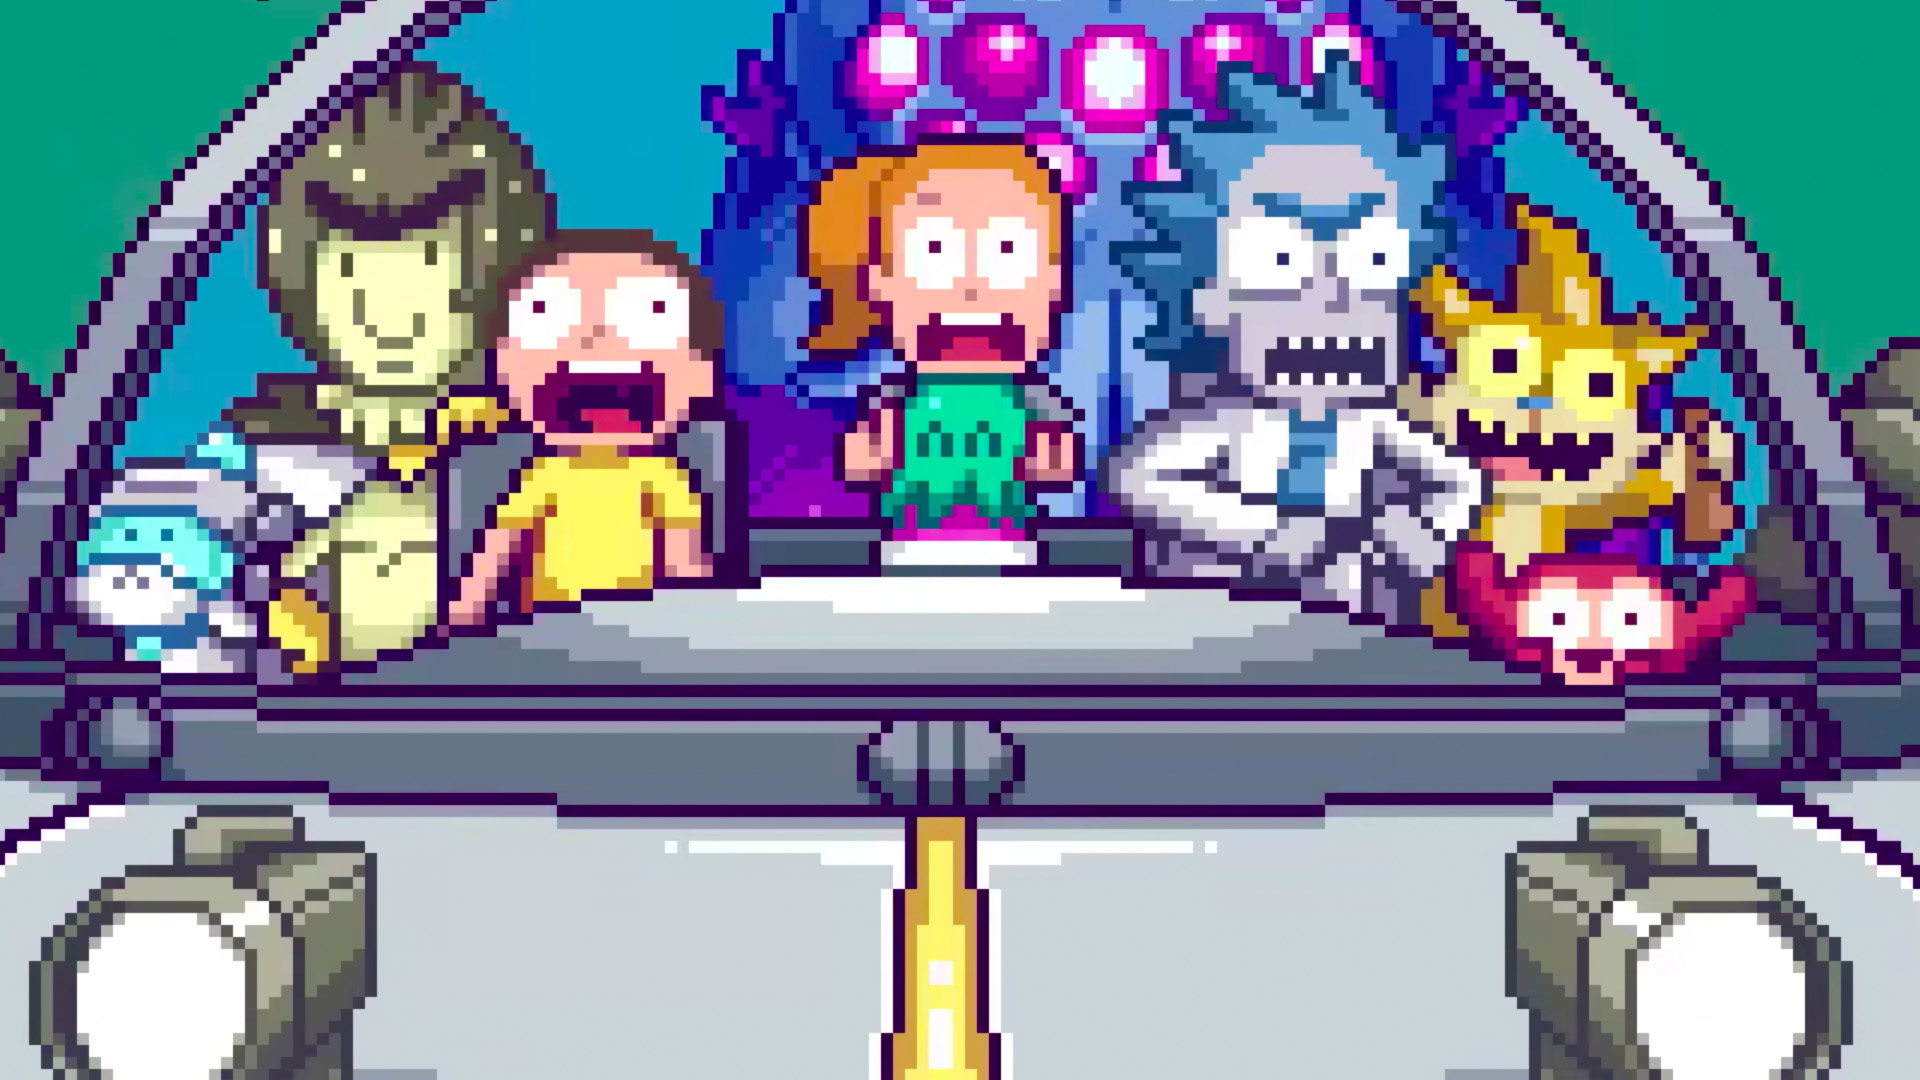 Retro 8 Bit Intro for Adult Swims RICK AND MORTY GeekTyrant 1920x1080